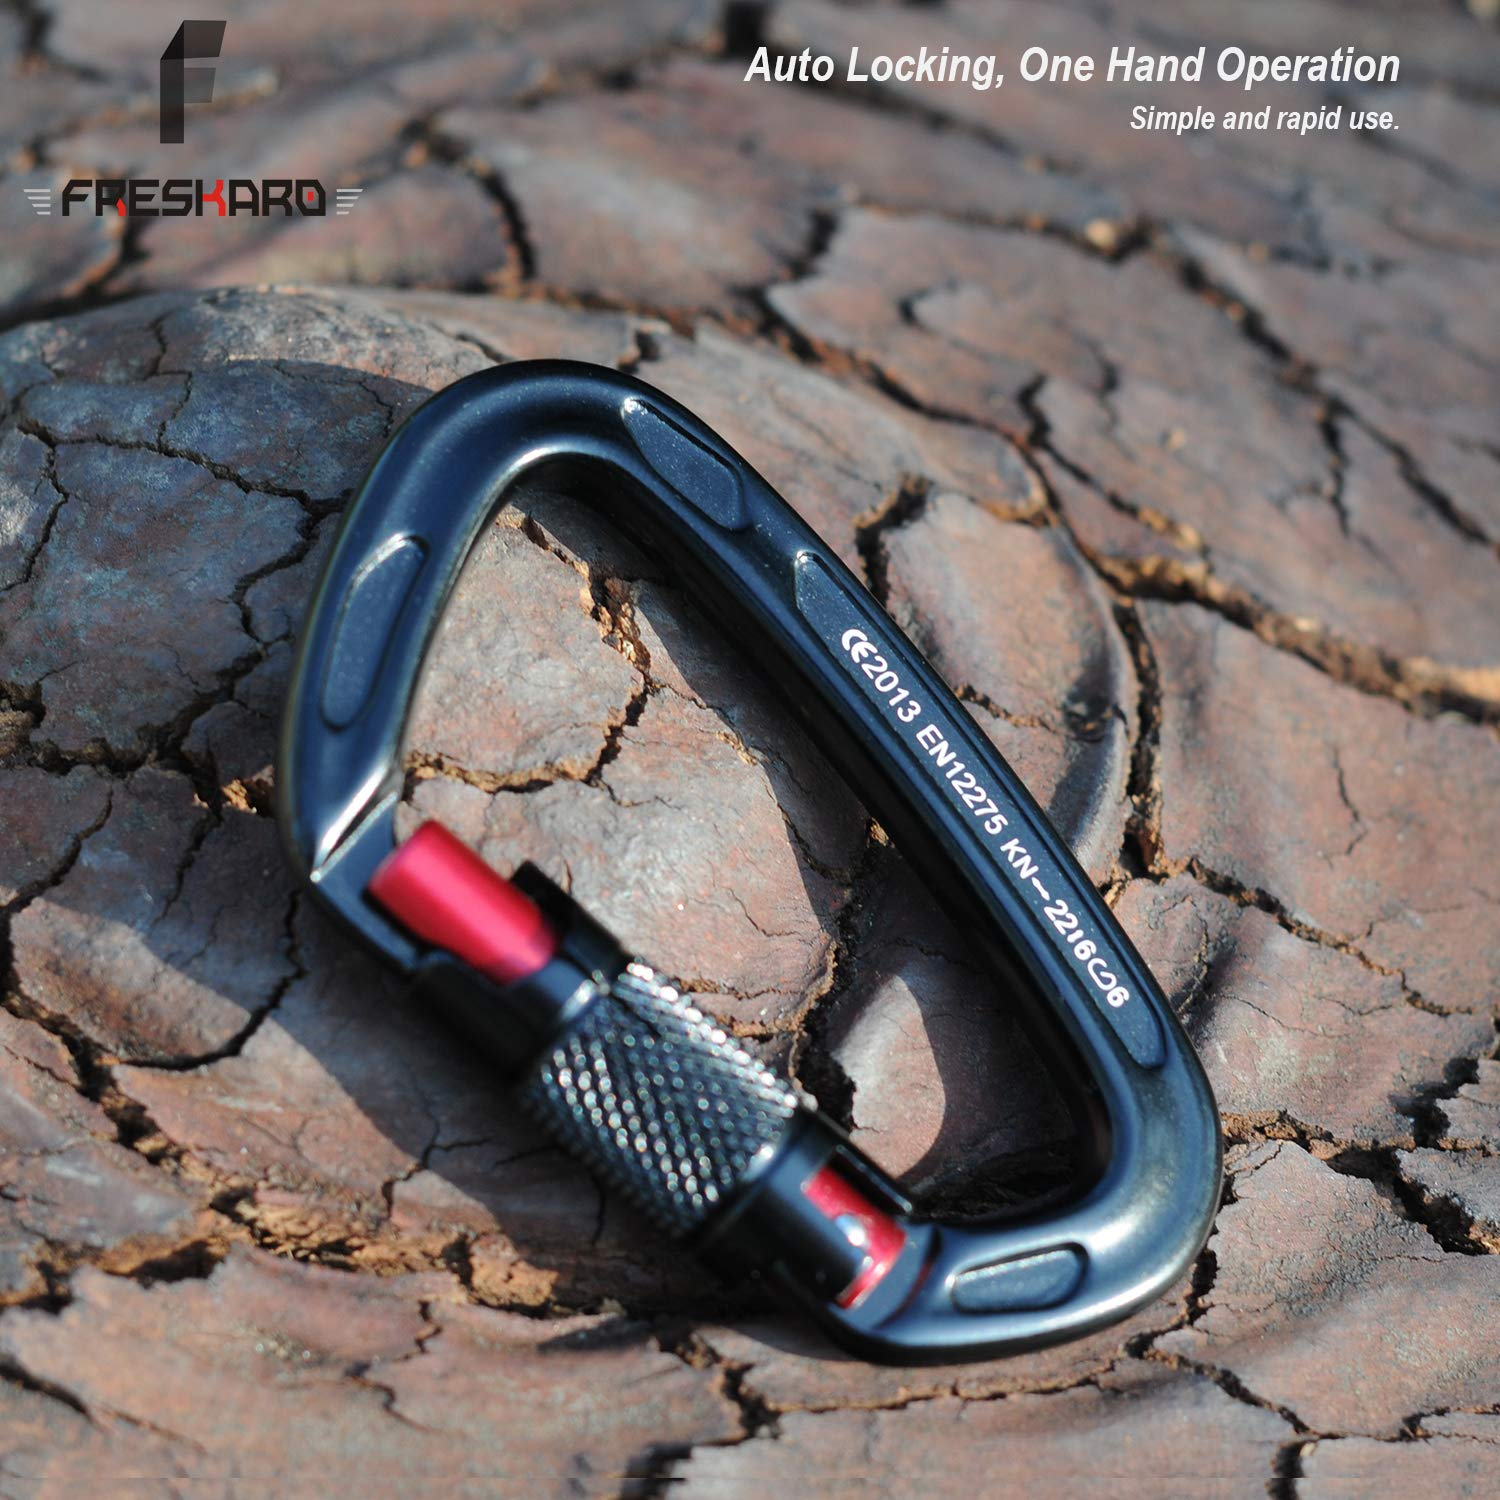 Black FresKaro 2pcs Climbing Carabiners-Auto Locking Carabiner Clips Twist Lock and Heavy Duty Carabiner Dog Leash D Shaped Certified for Climbing and Rappelling Large Size